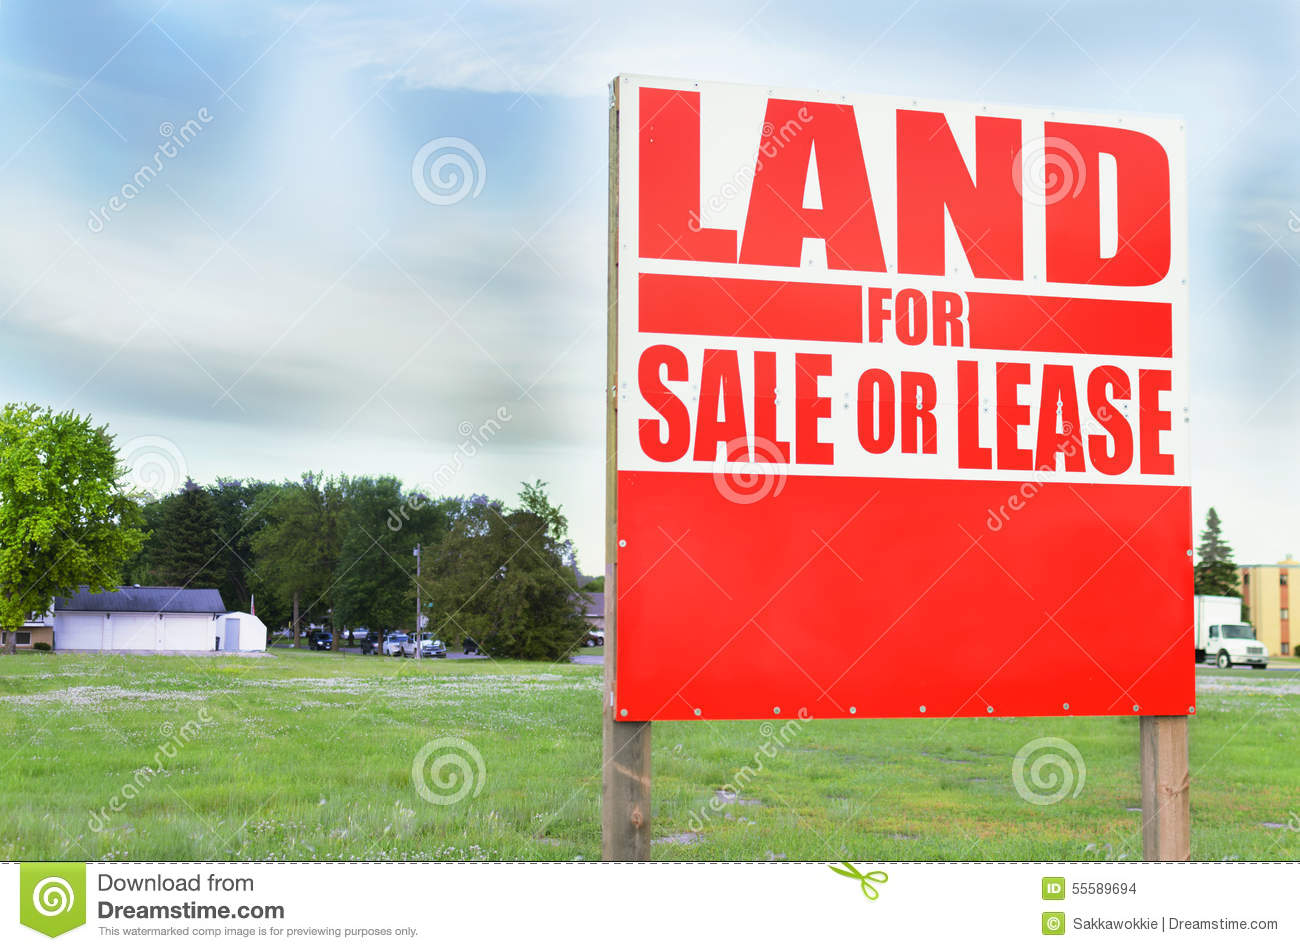 For sale sign outside property and land sale or lease